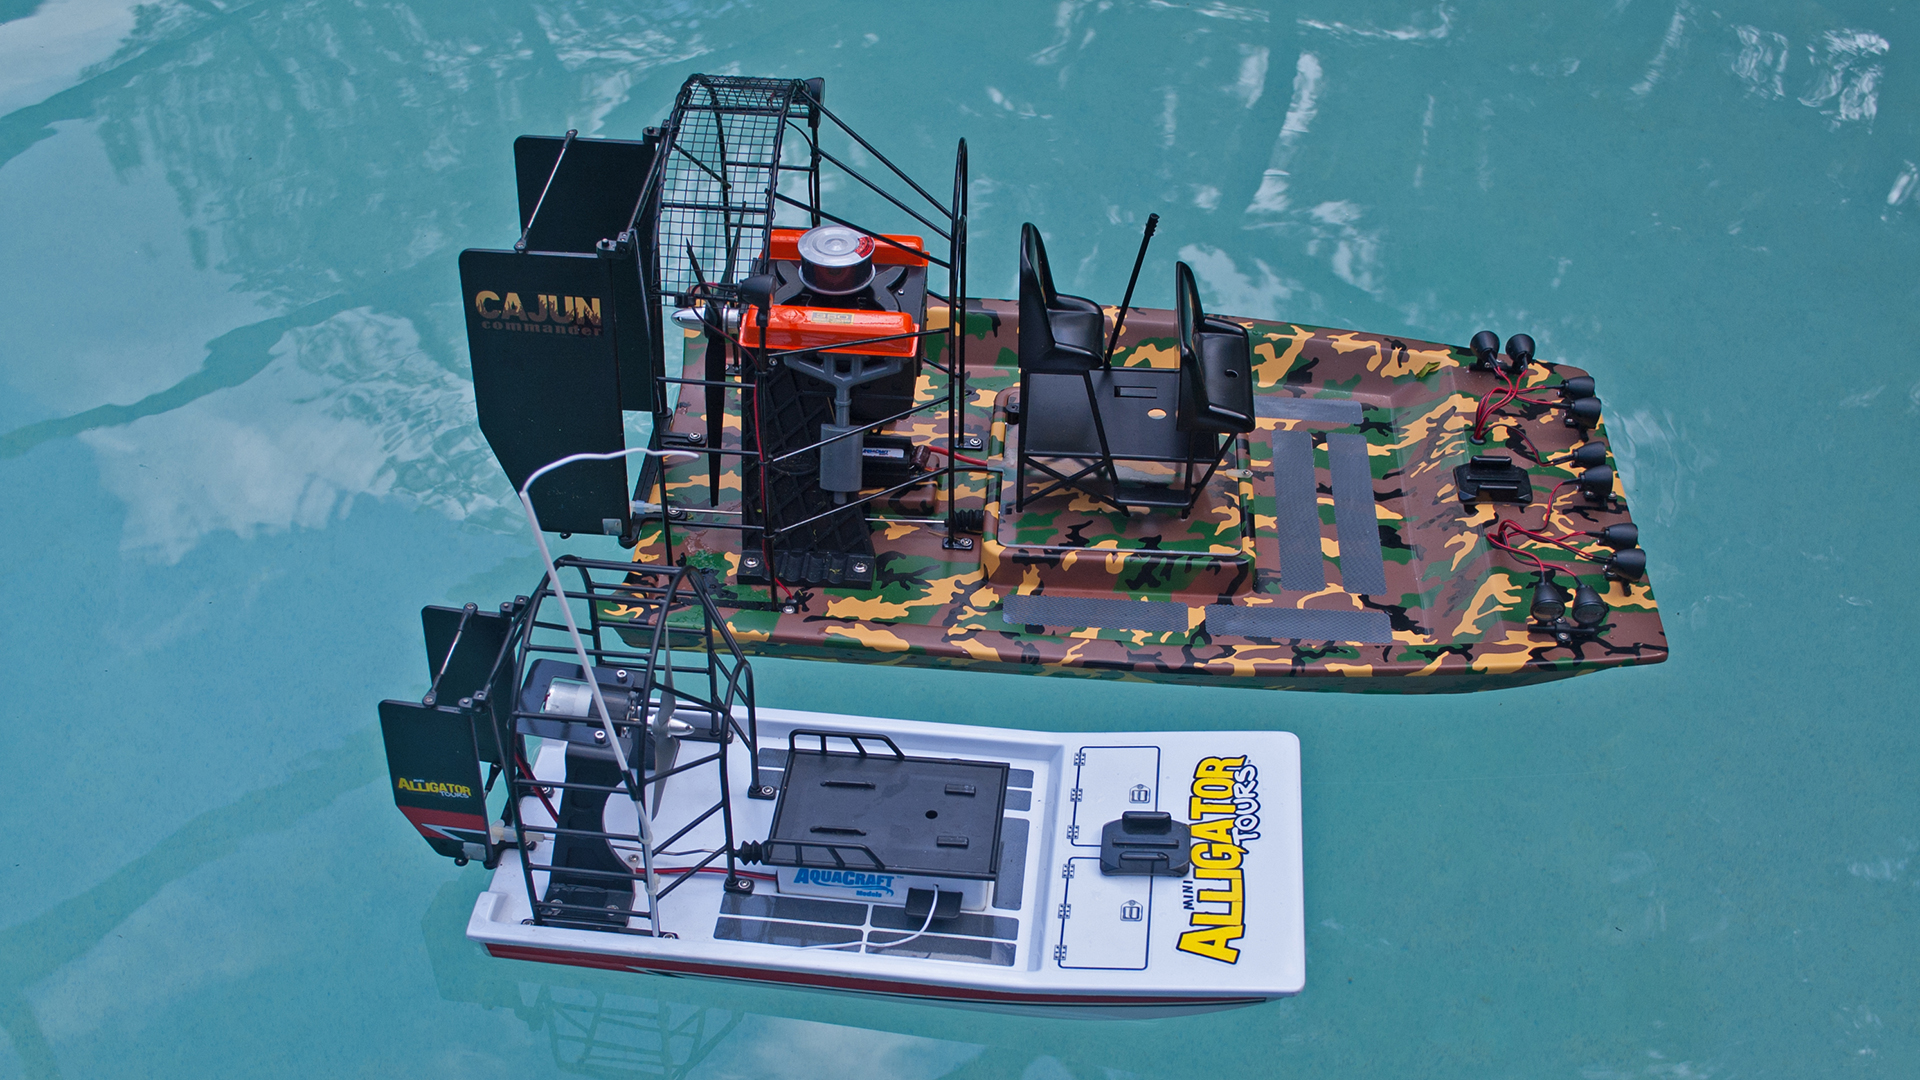 Hobby rc testing the aquacraft cajun commander tested the cajun commander represents a moderate increase in size over the mini alligator tours with a huge uptick in power and performance sciox Image collections